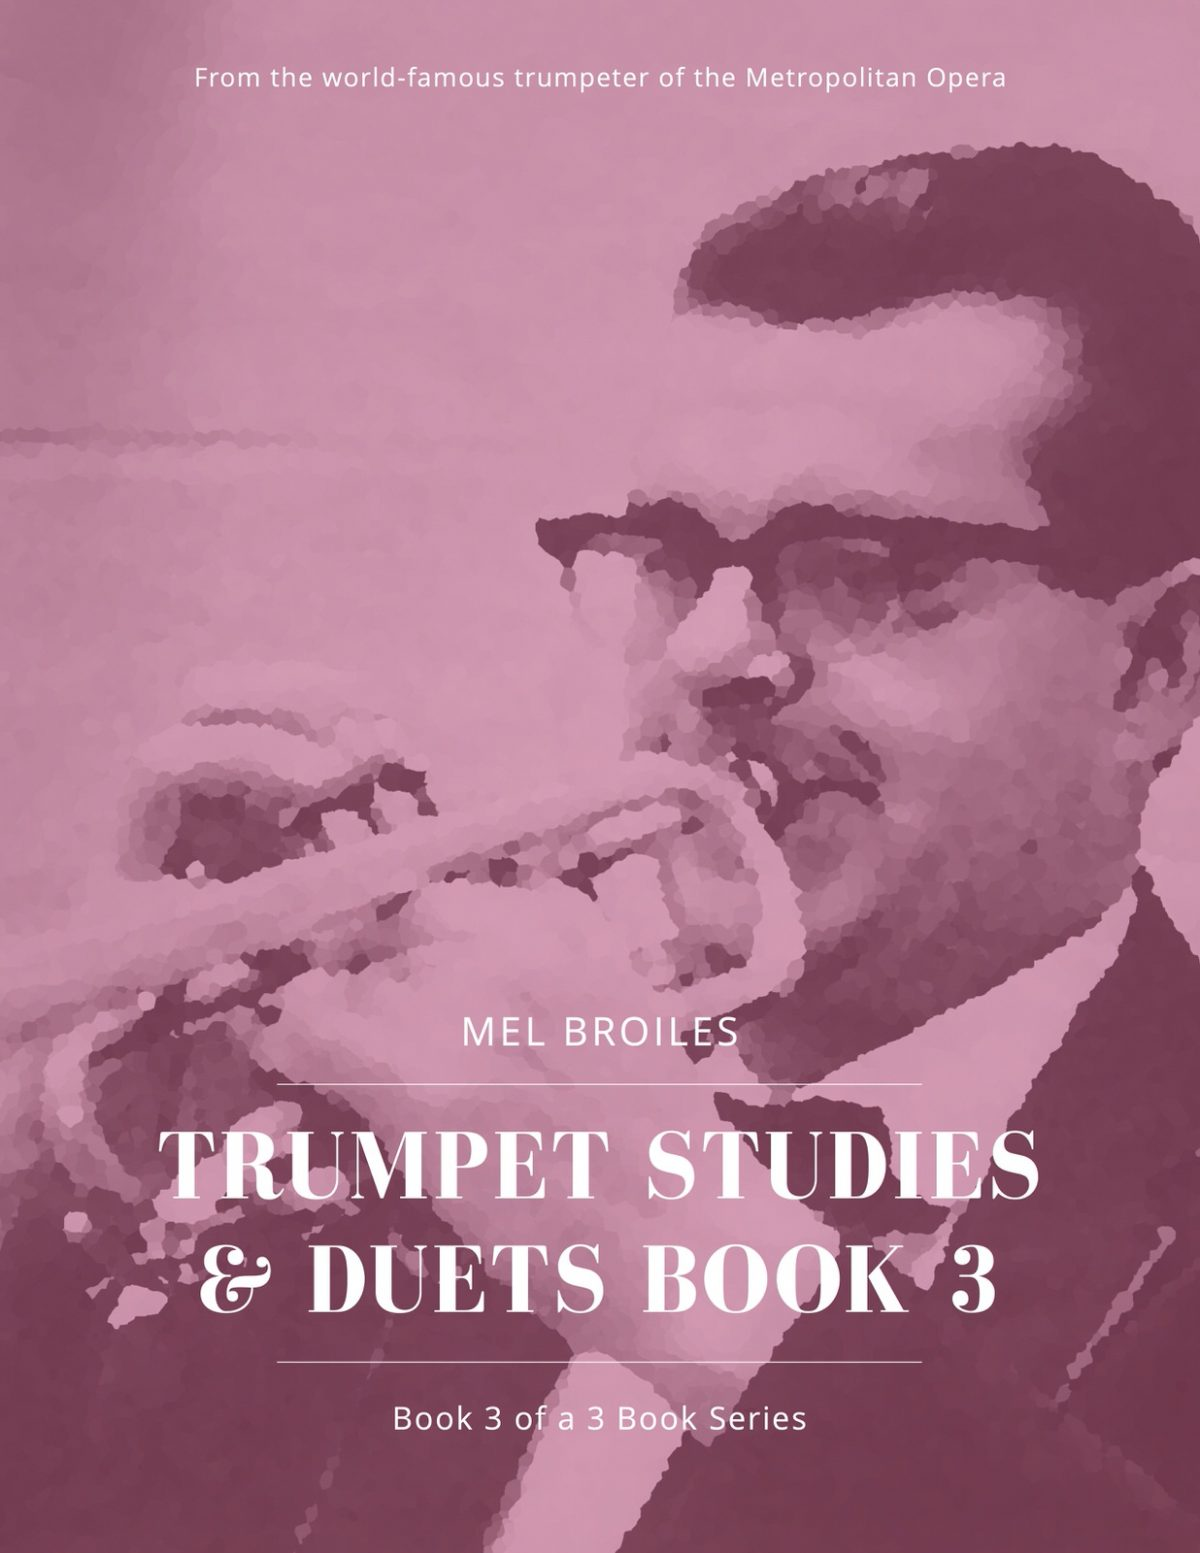 Broiles, Trumpet Studies and Duets Book 3-p01